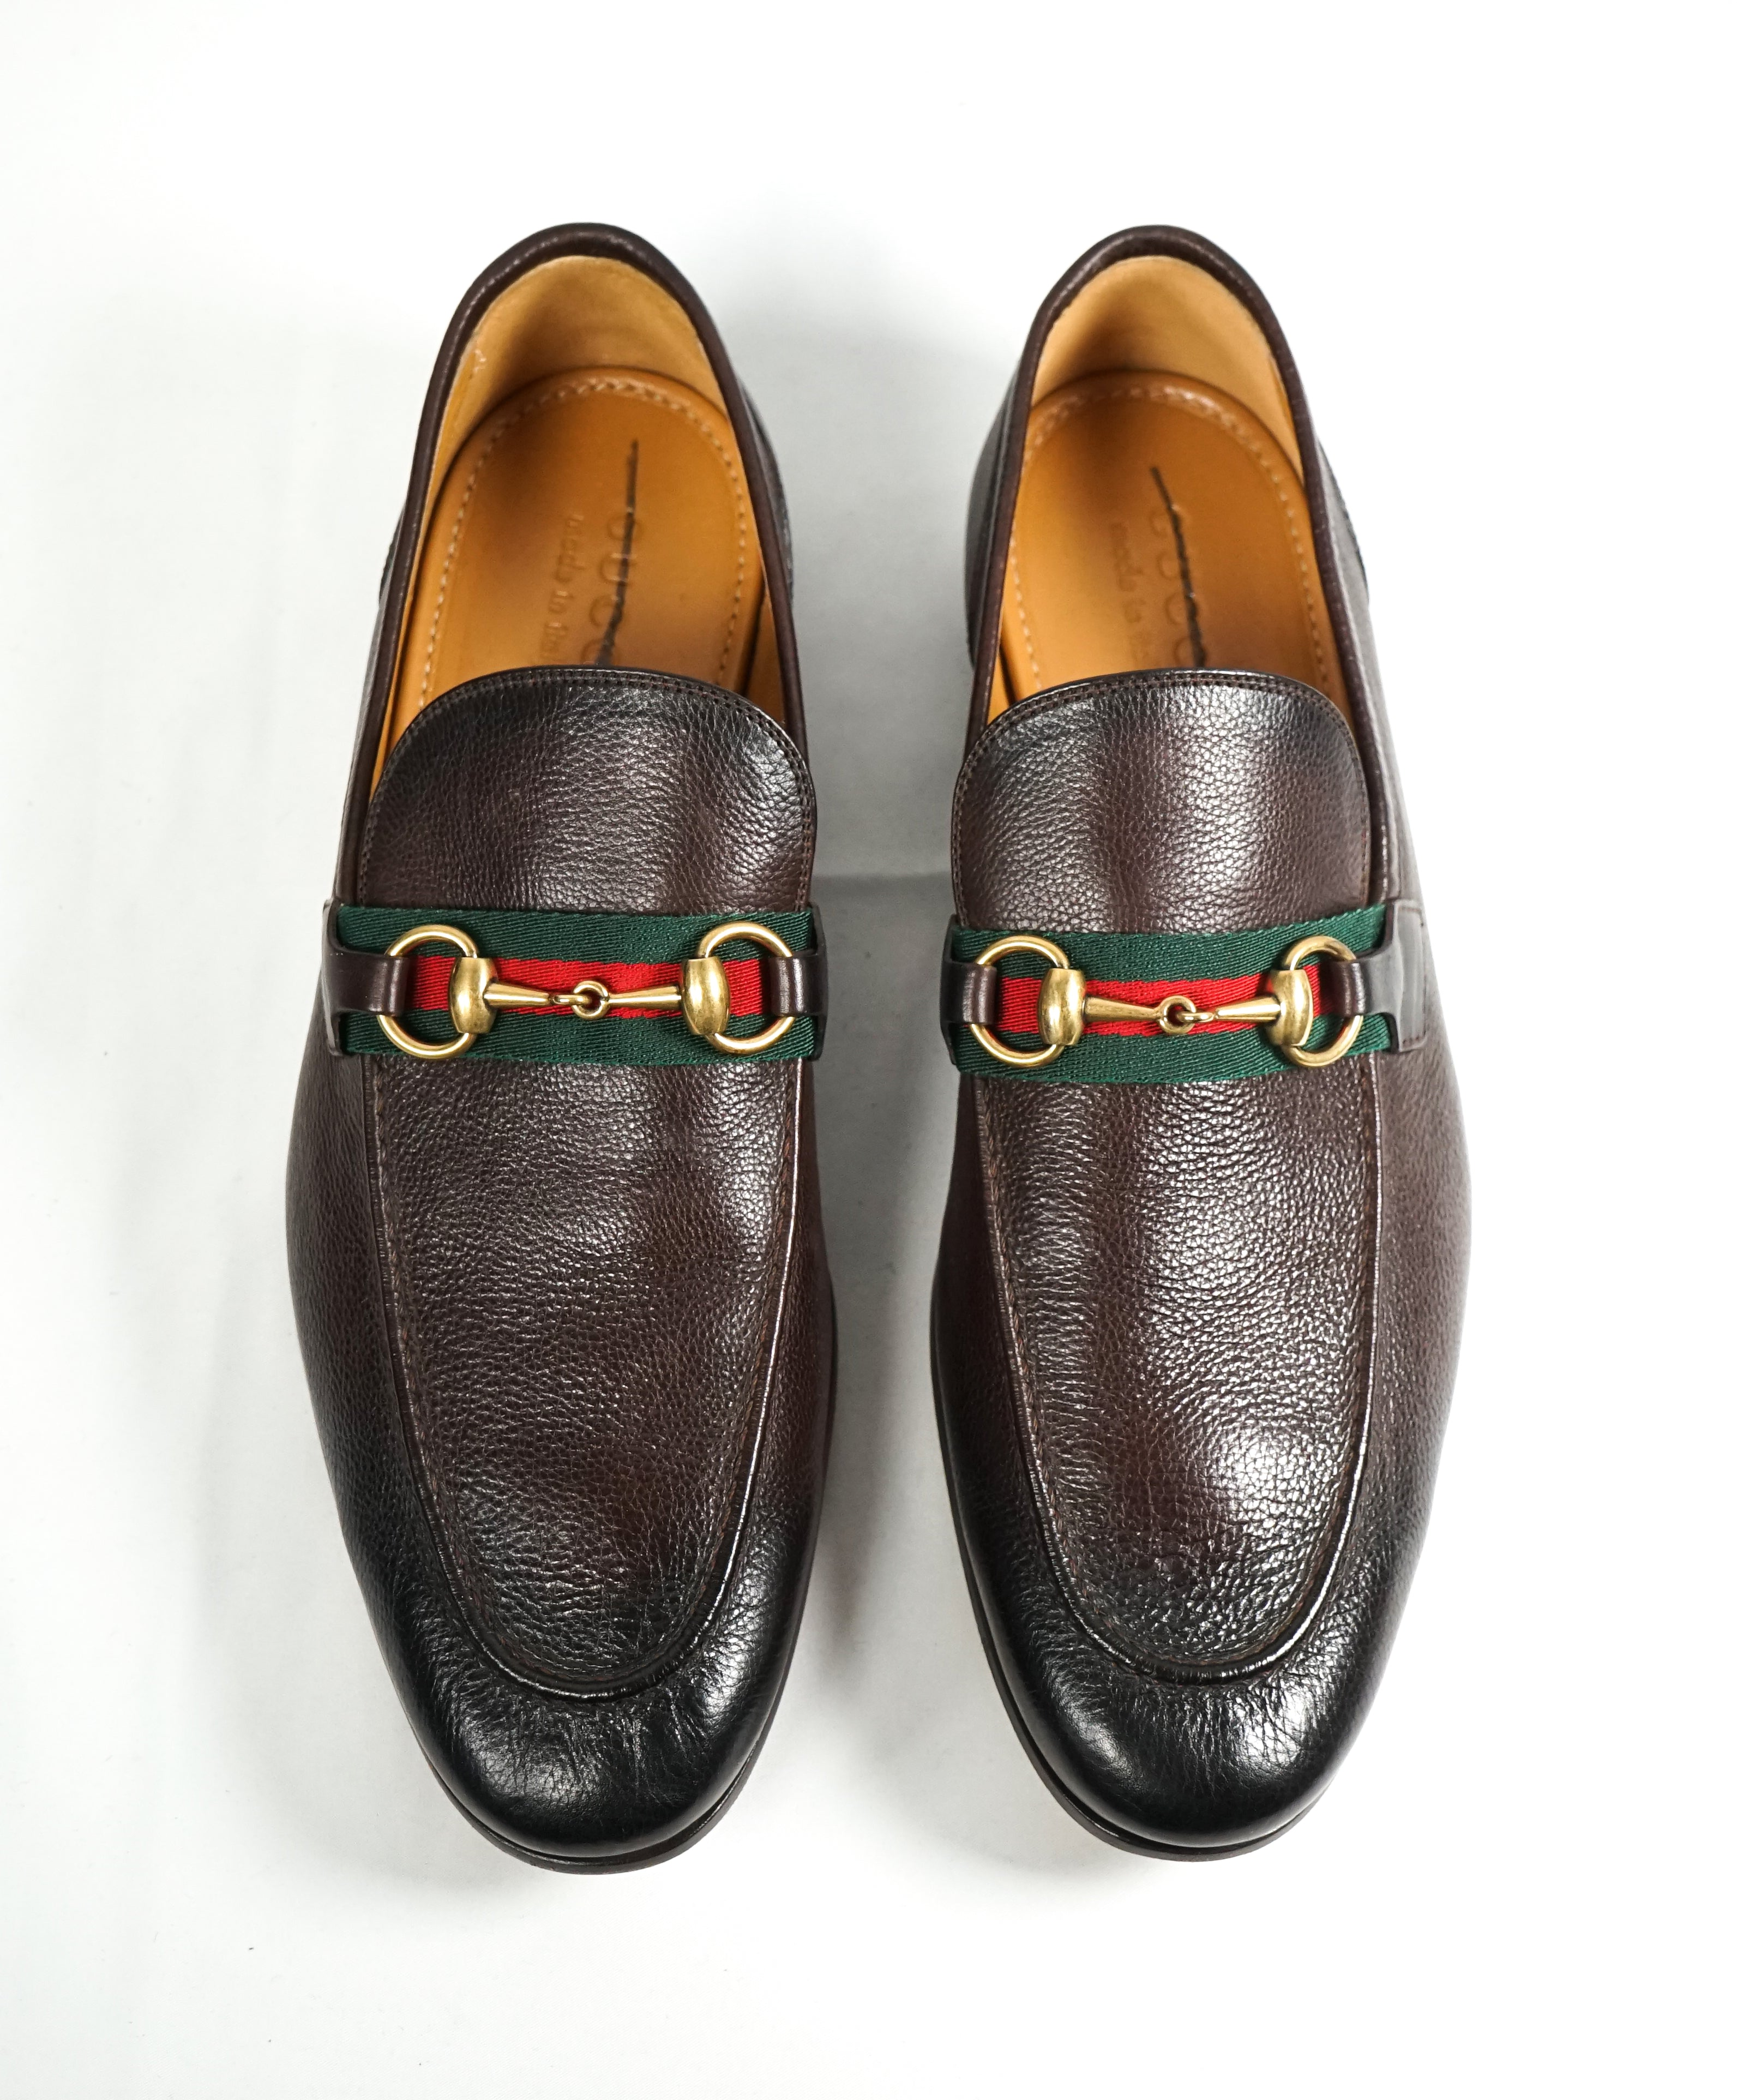 GUCCI - Iconic Green & Red Stripe Horsebit Loafers - 10